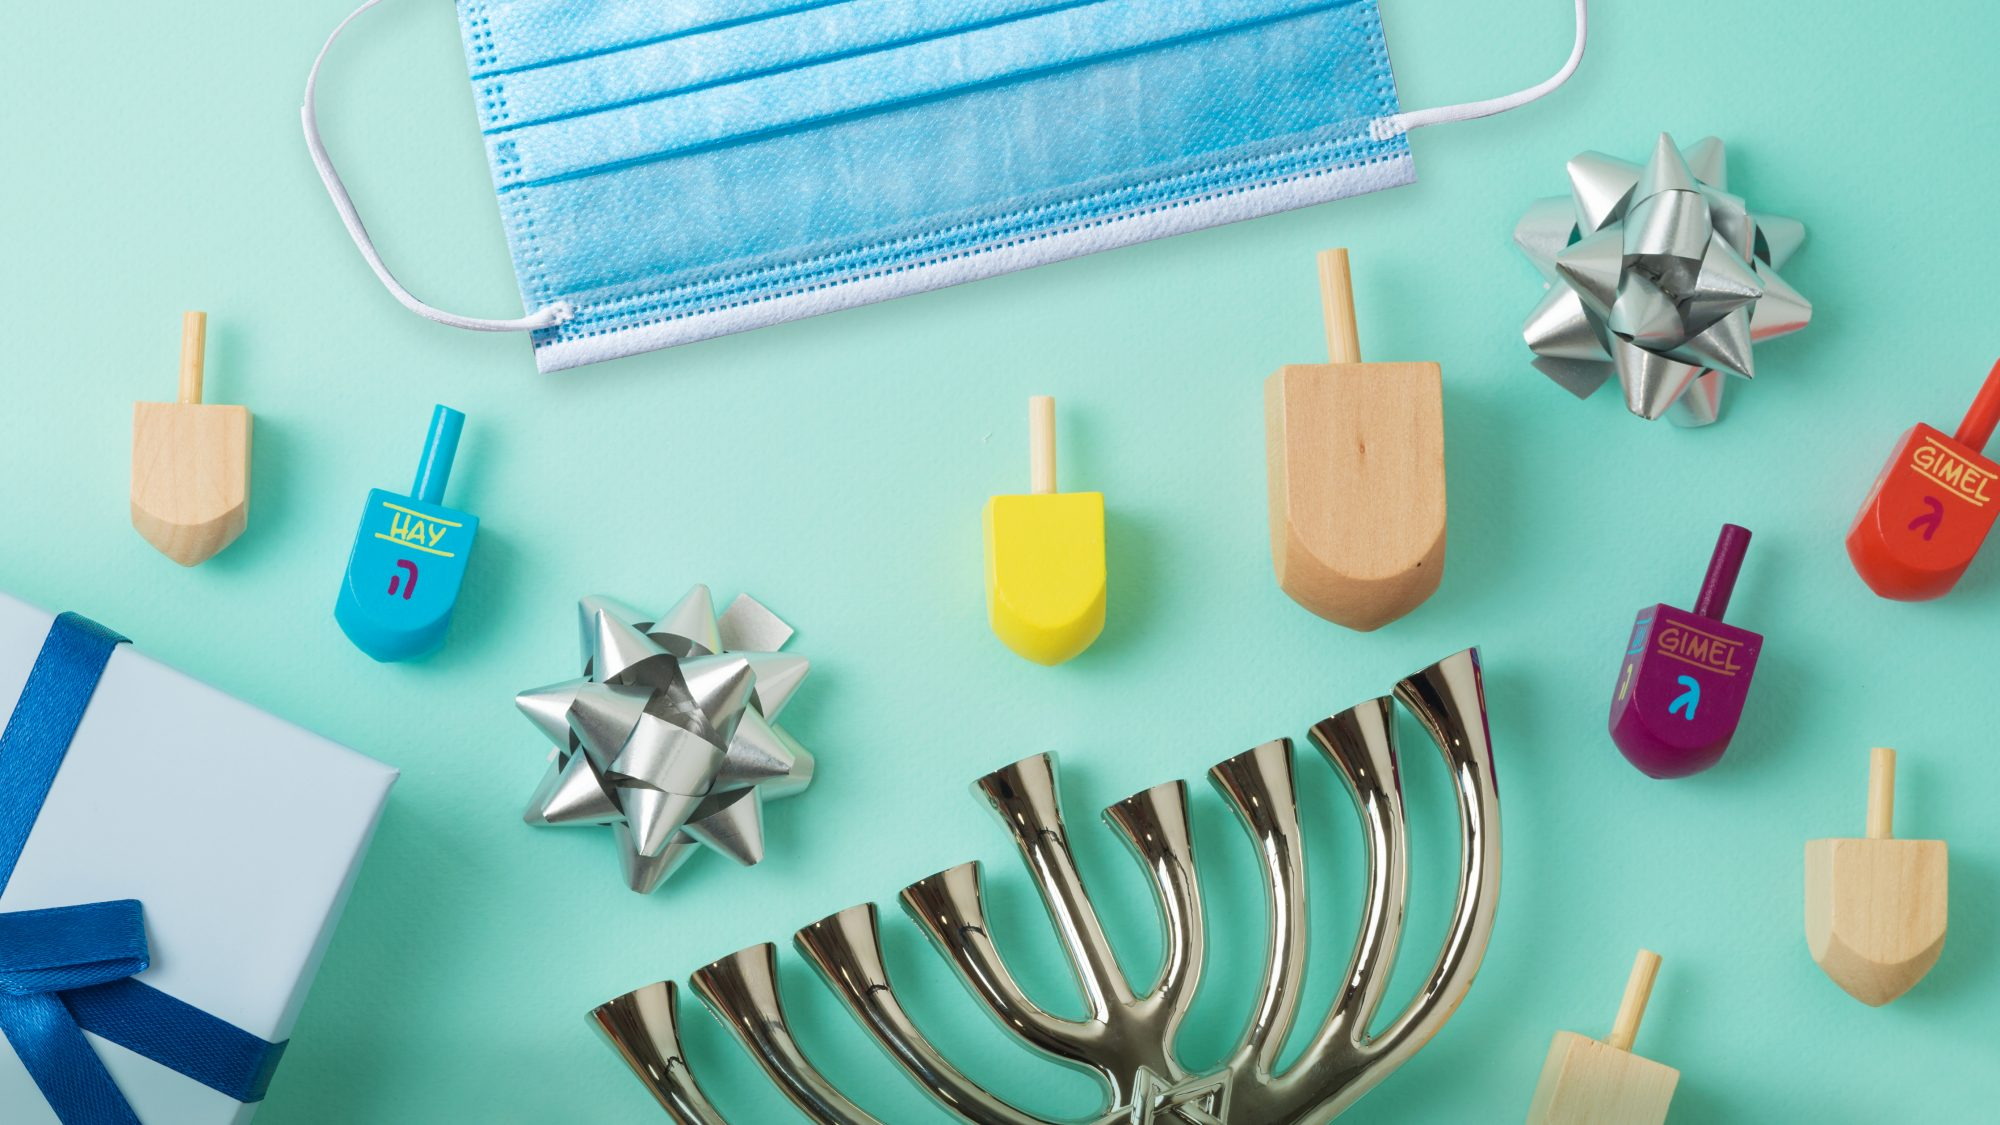 How to celebrate Hanukkah safely during coronavirus - menorah and hanukkah items with mask